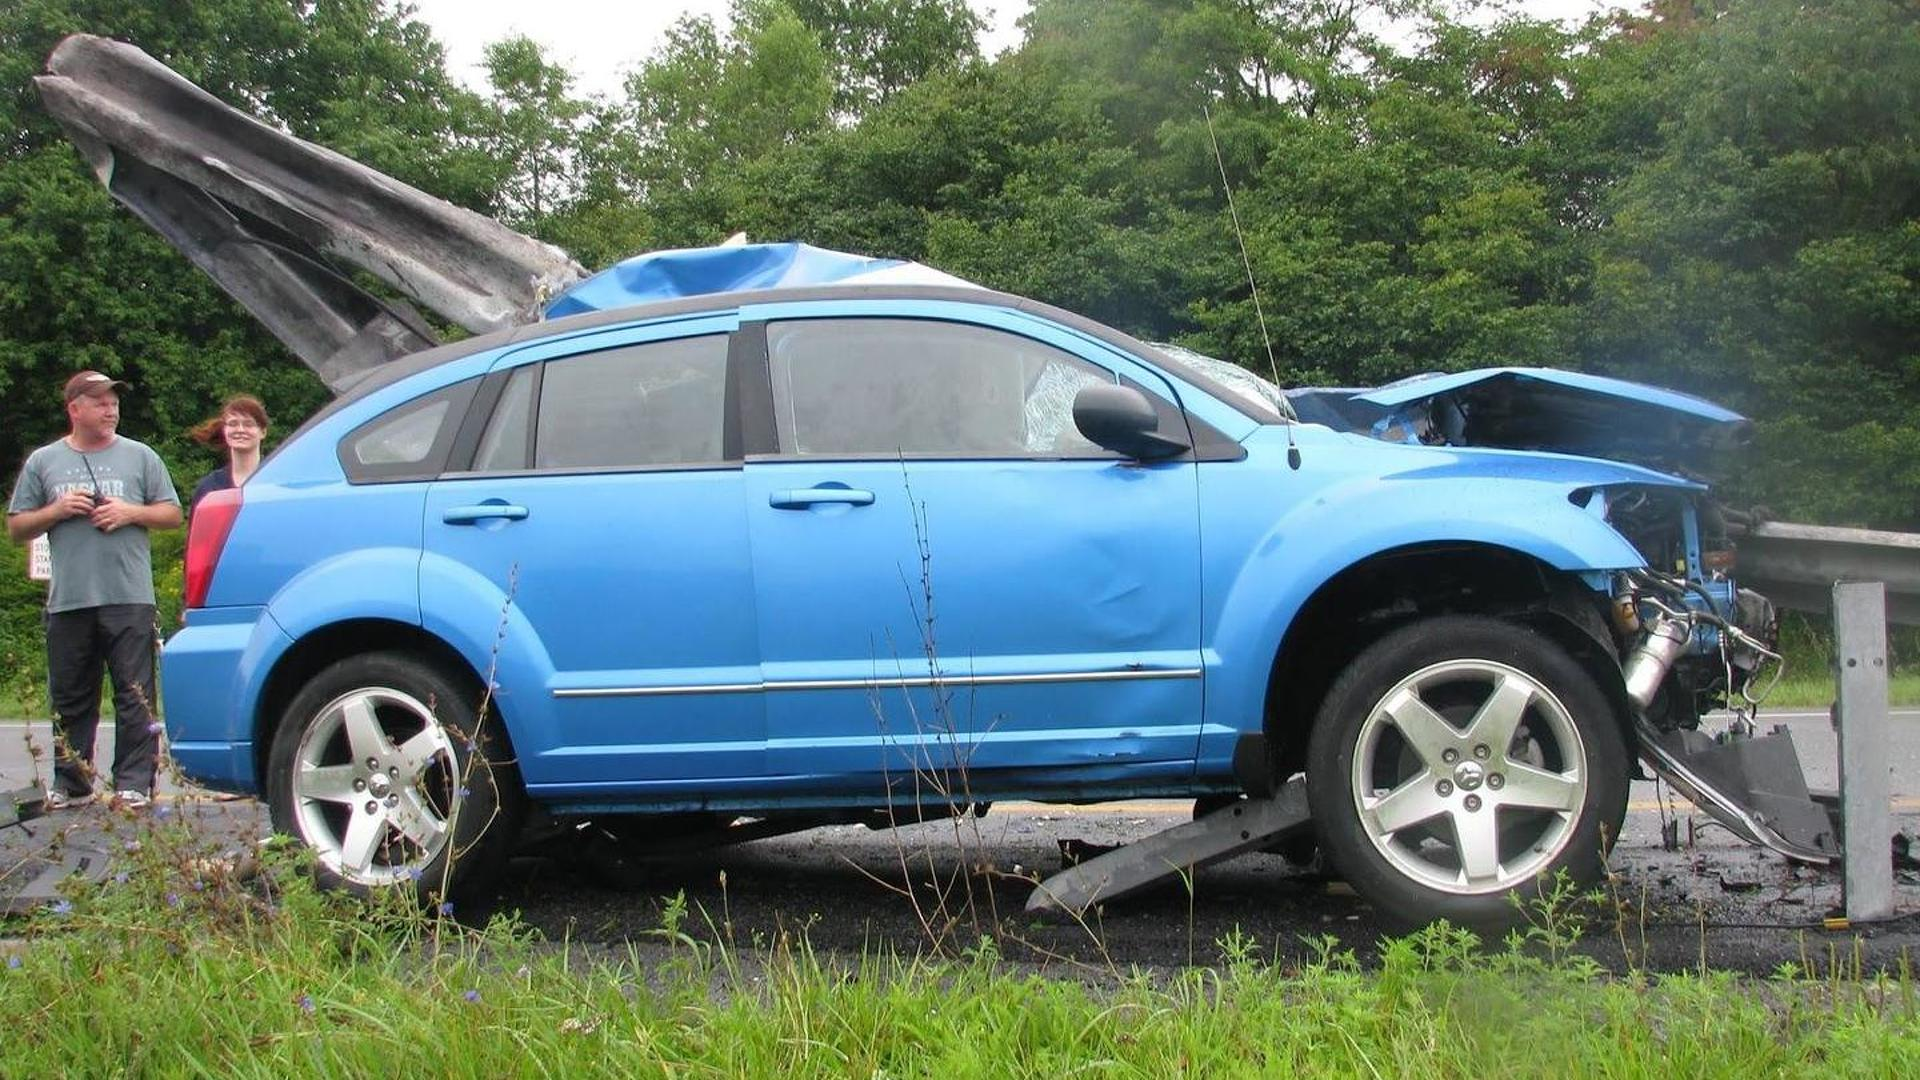 Dodge Caliber impaled in horrifying accident but driver survives